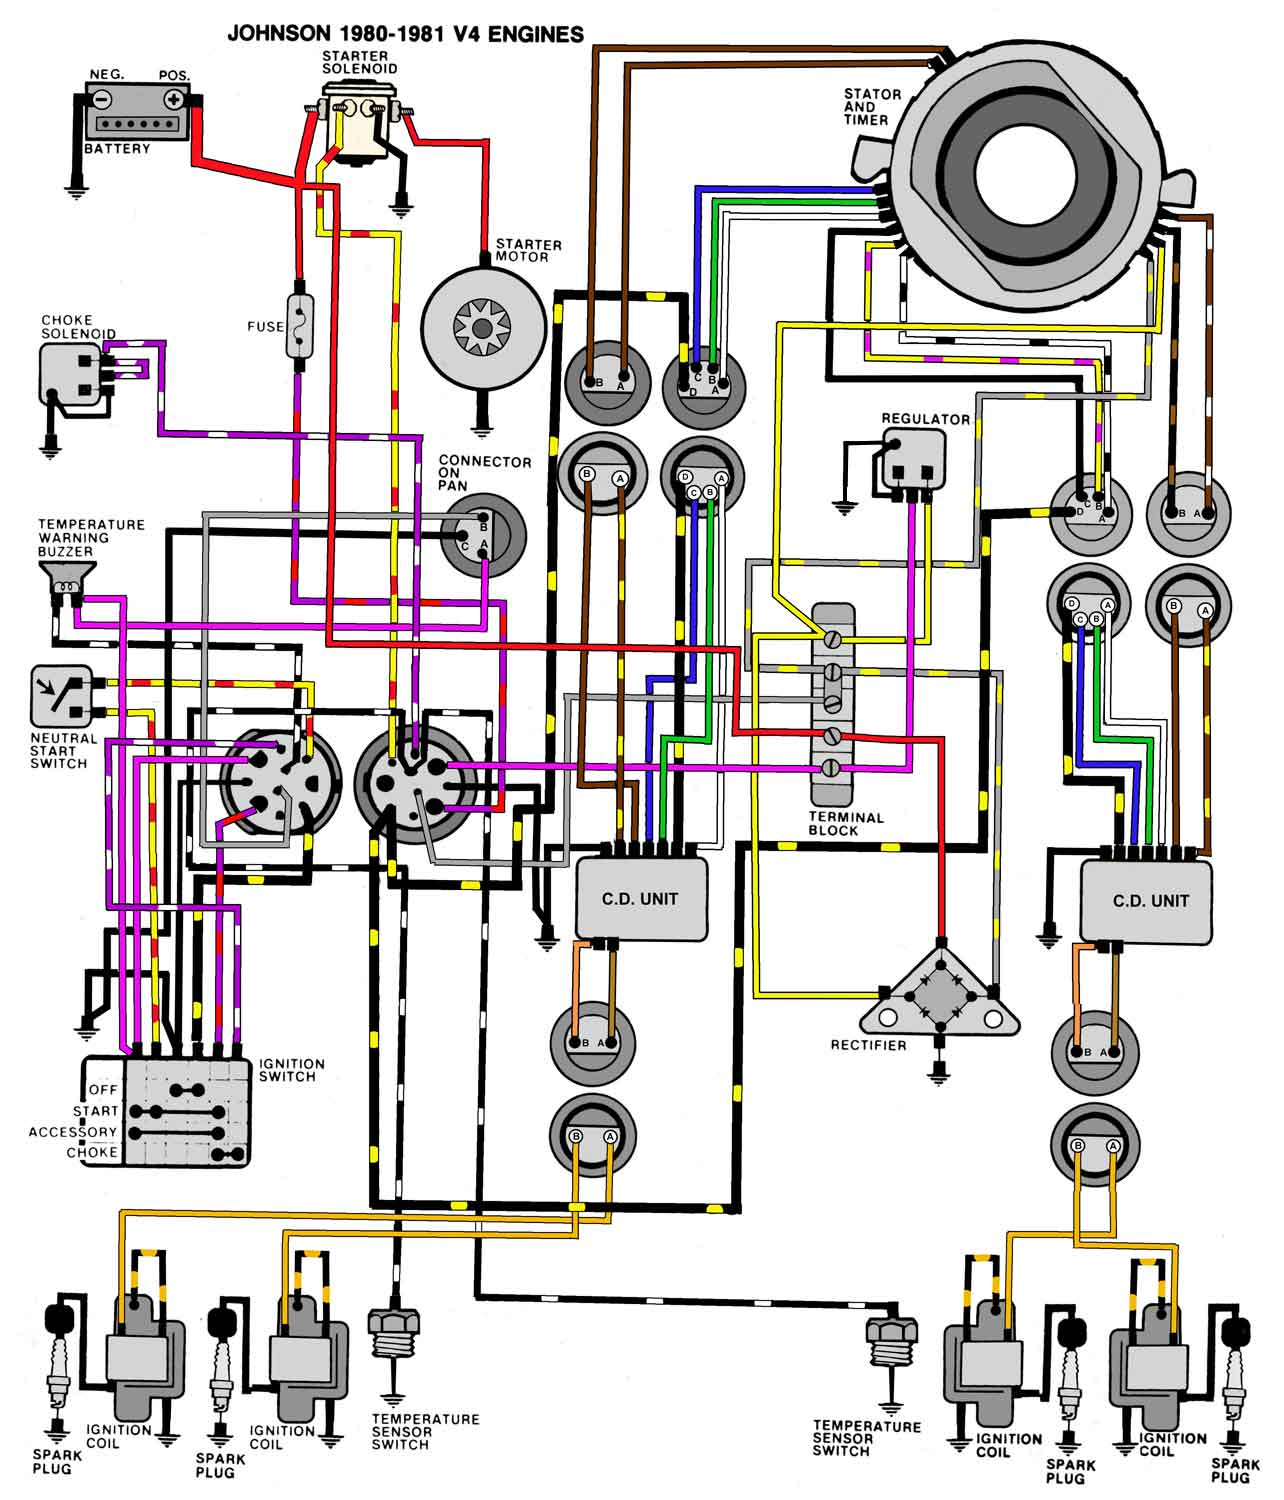 evinrude johnson outboard wiring diagrams -- mastertech ... evinrude wiring diagrams max rules evinrude wiring diagrams gas gauge